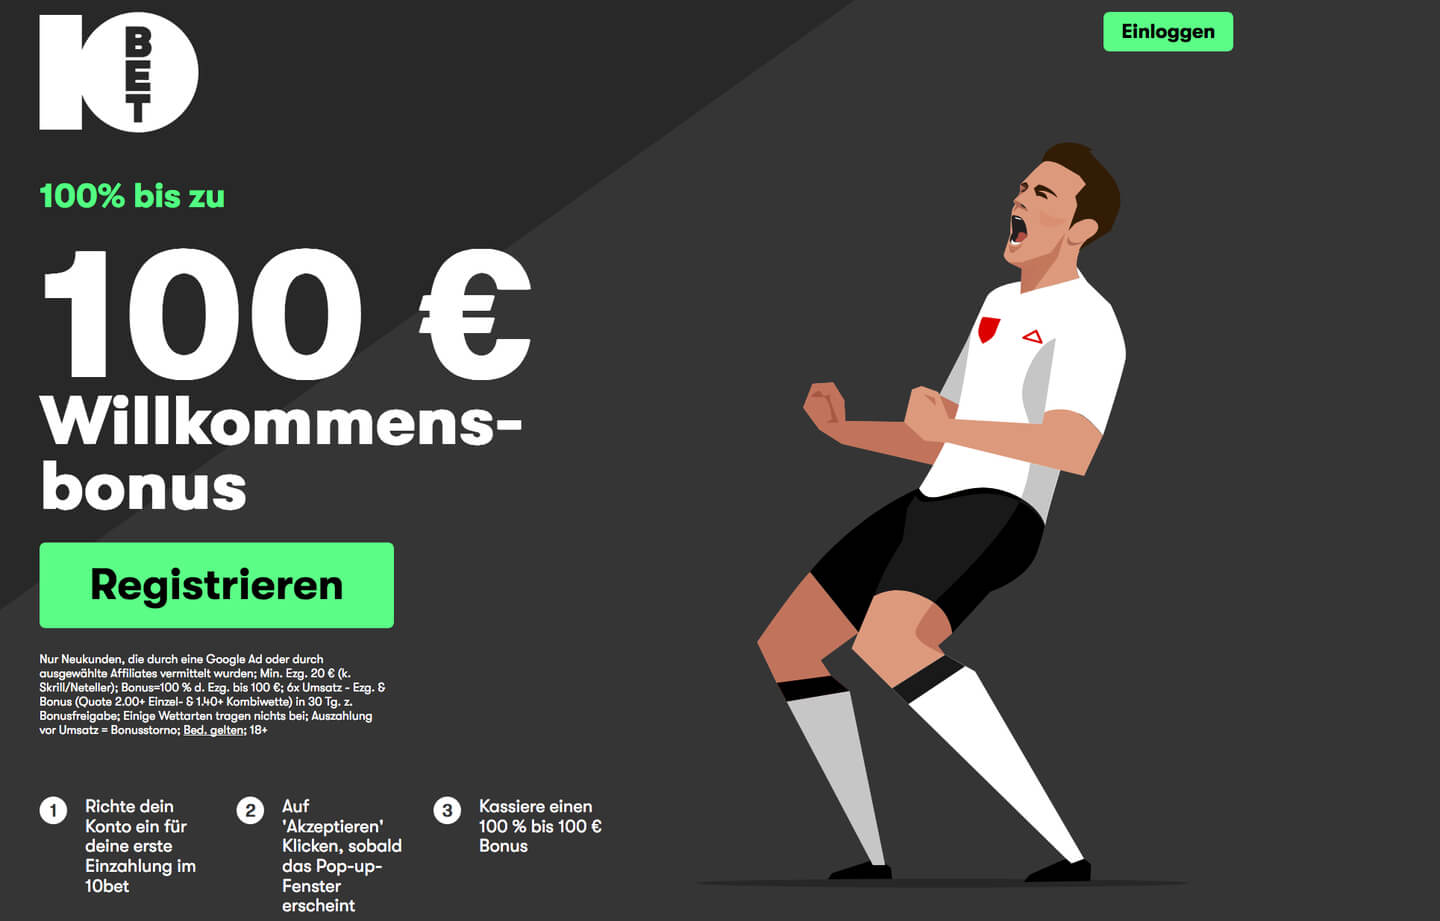 10bet bonus screenshot